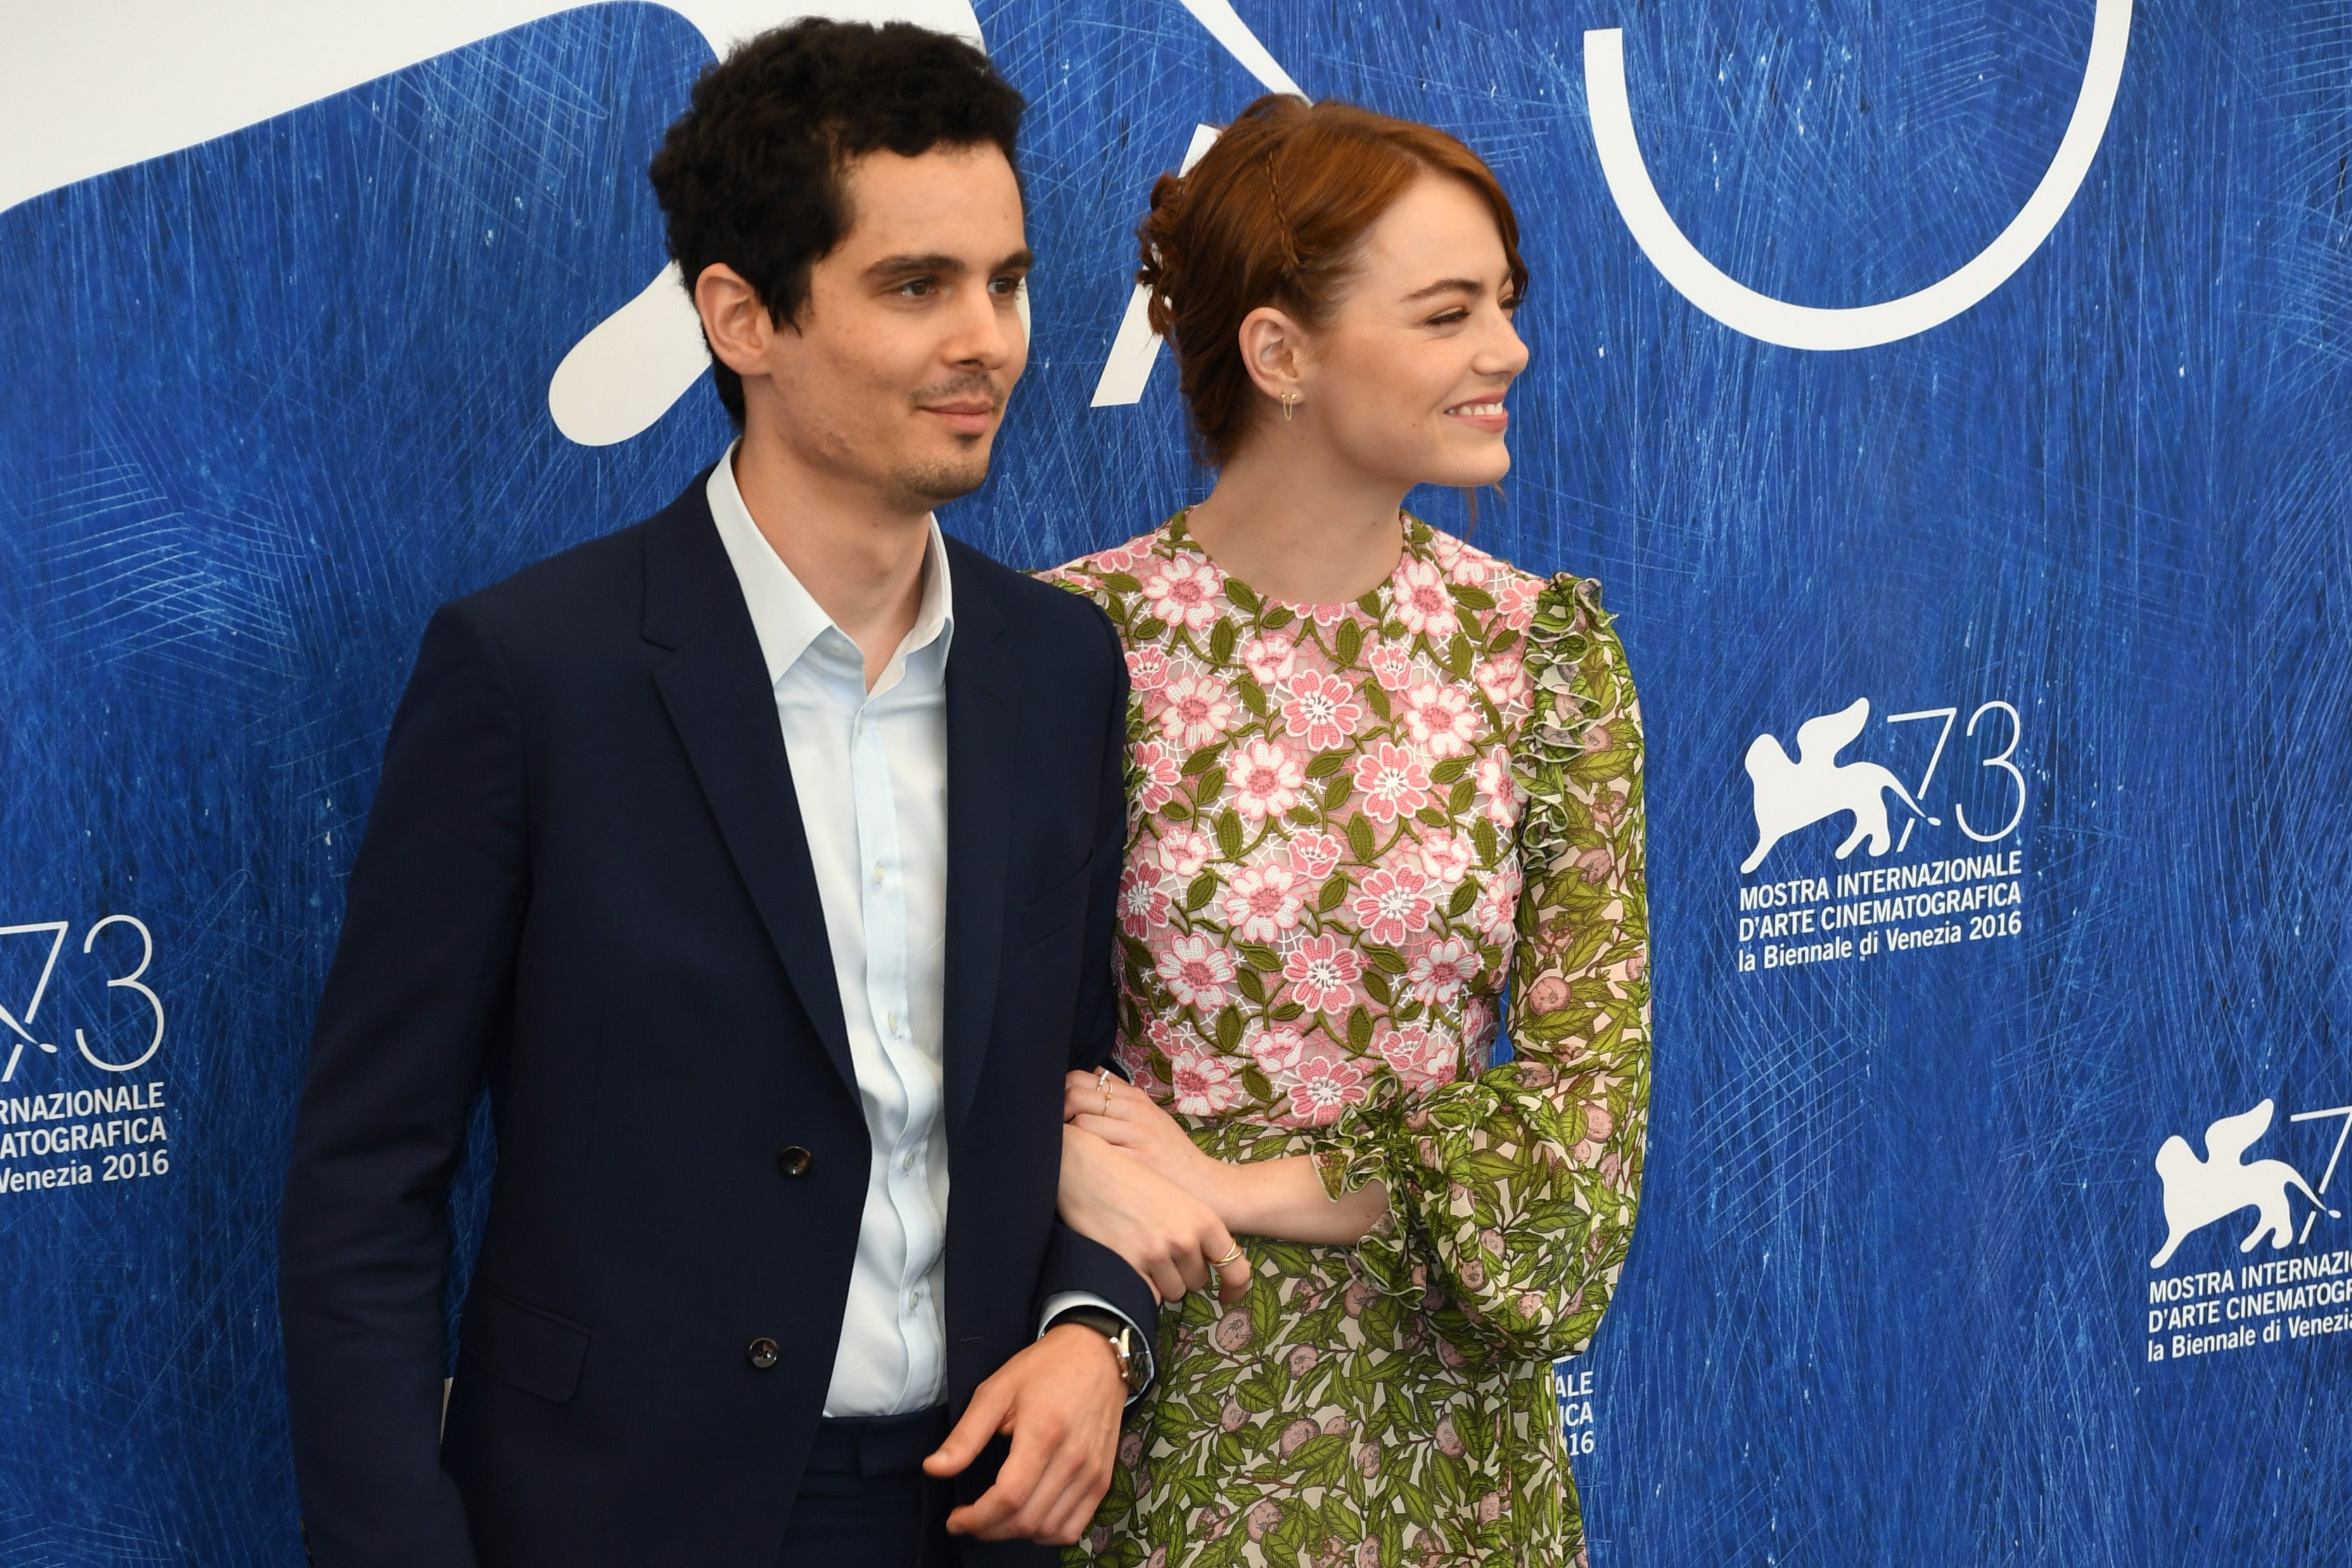 La La Land Director Damien Chazelle and Actress Emma Stone at Venice 2016